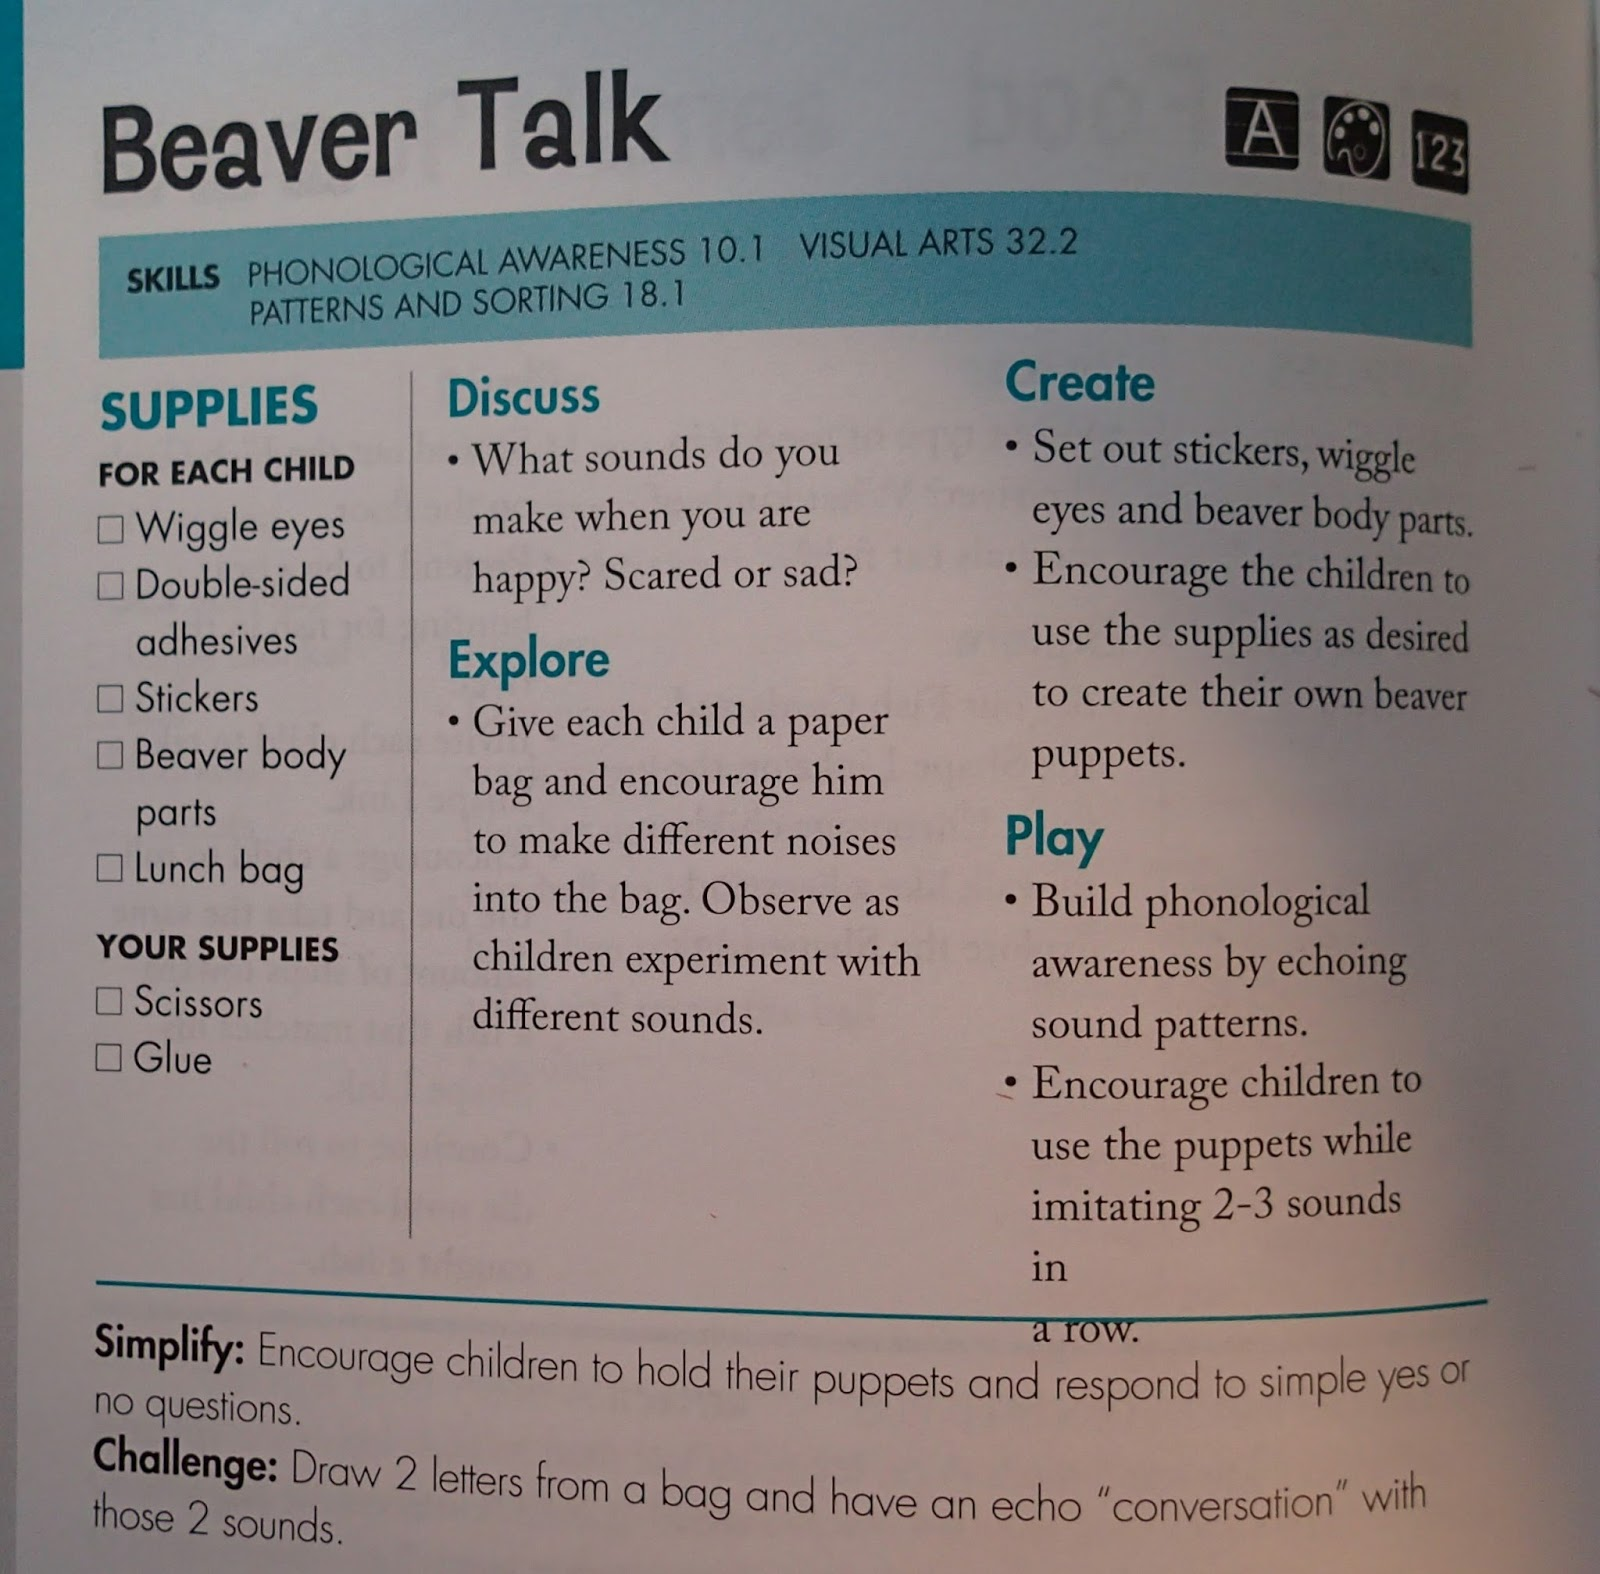 1 Day at Home: Beavers